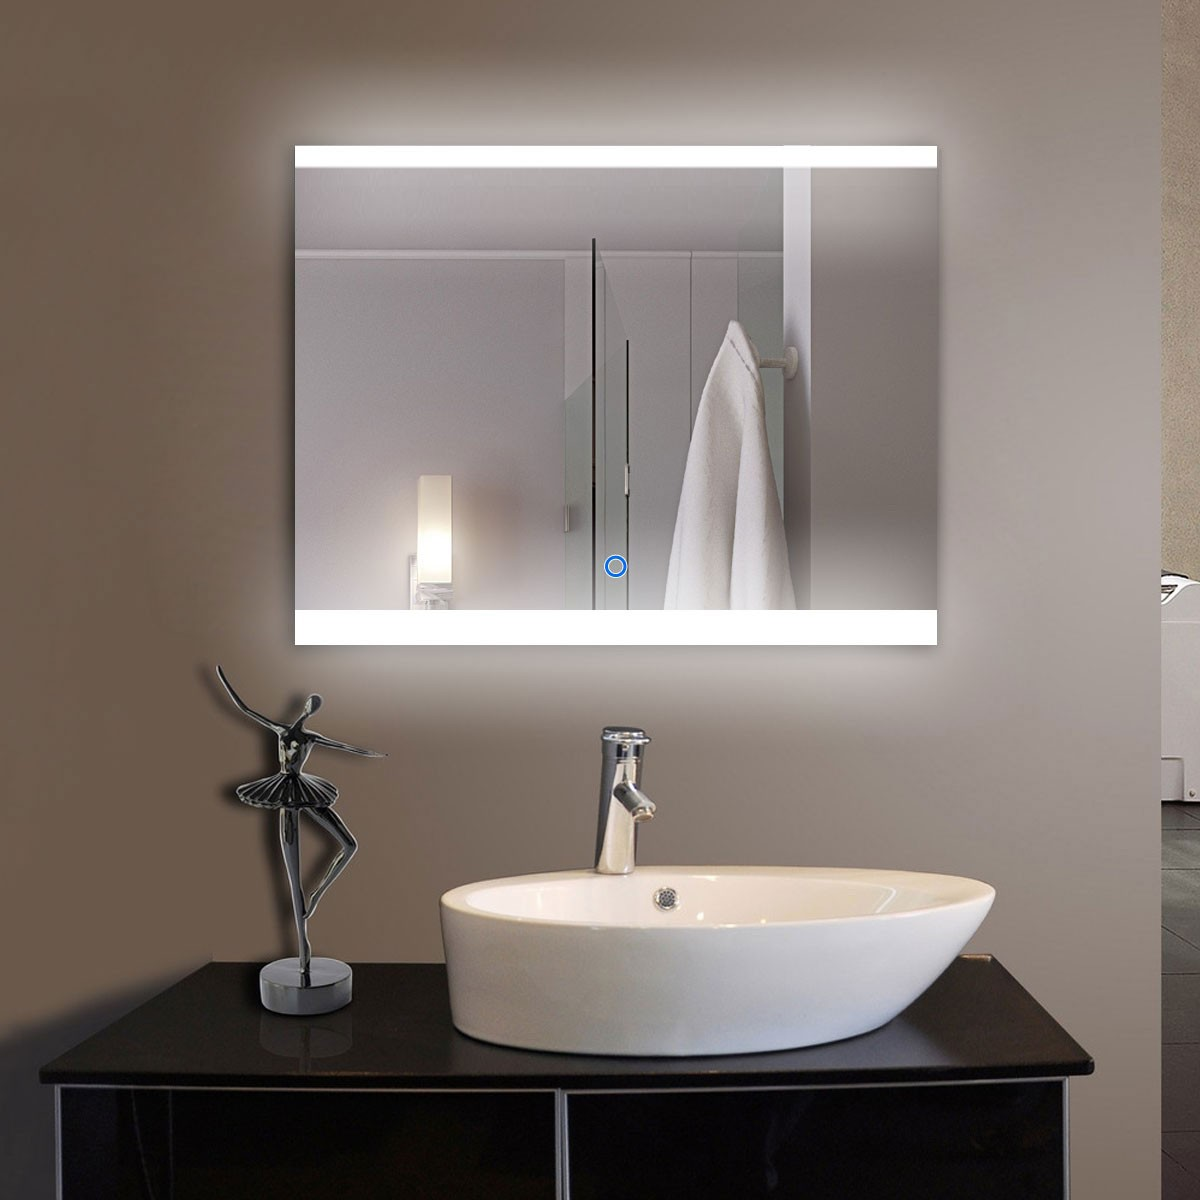 36 x 28 In Horizontal LED Bathroom Mirror, Touch Button (DK-OD-CL056)